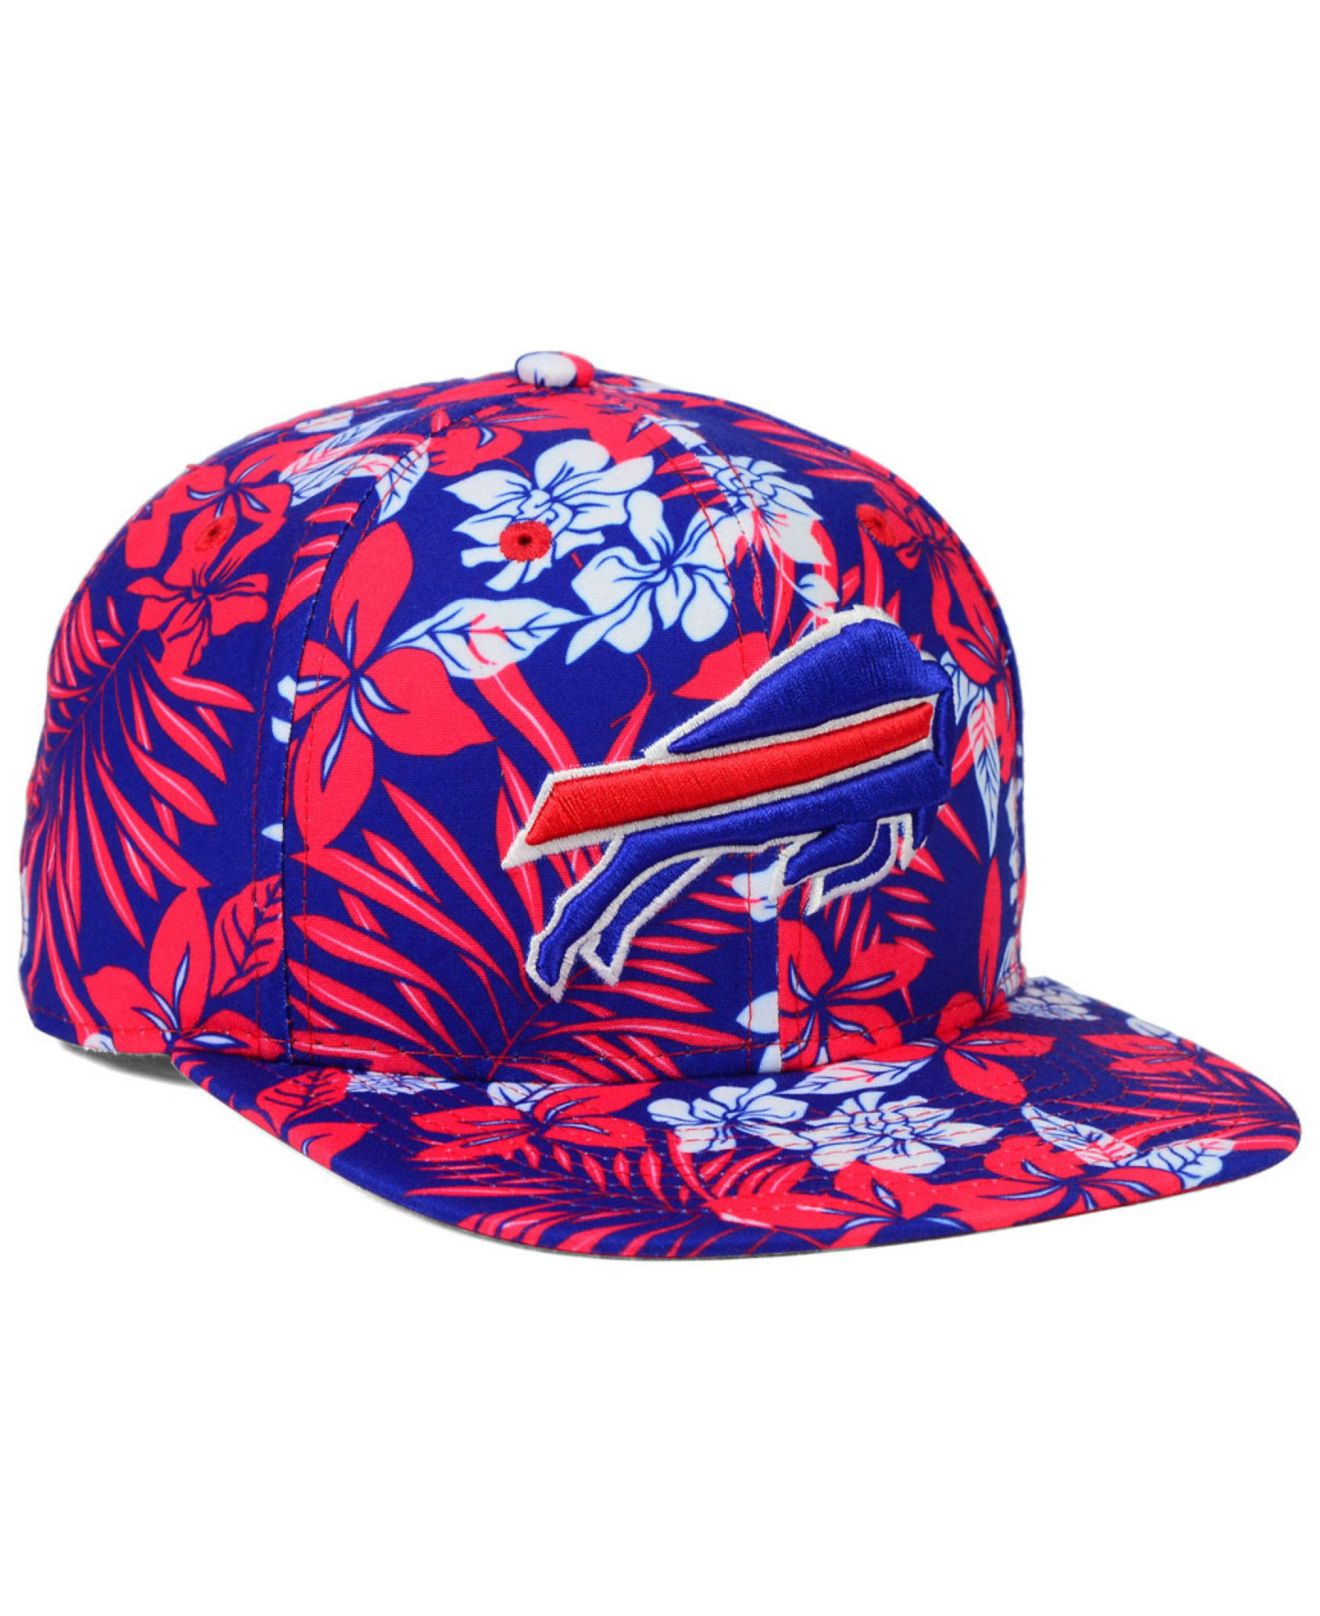 Wholesale coupon code buffalo bills buffalo hat 8dbe8 15435  for cheap